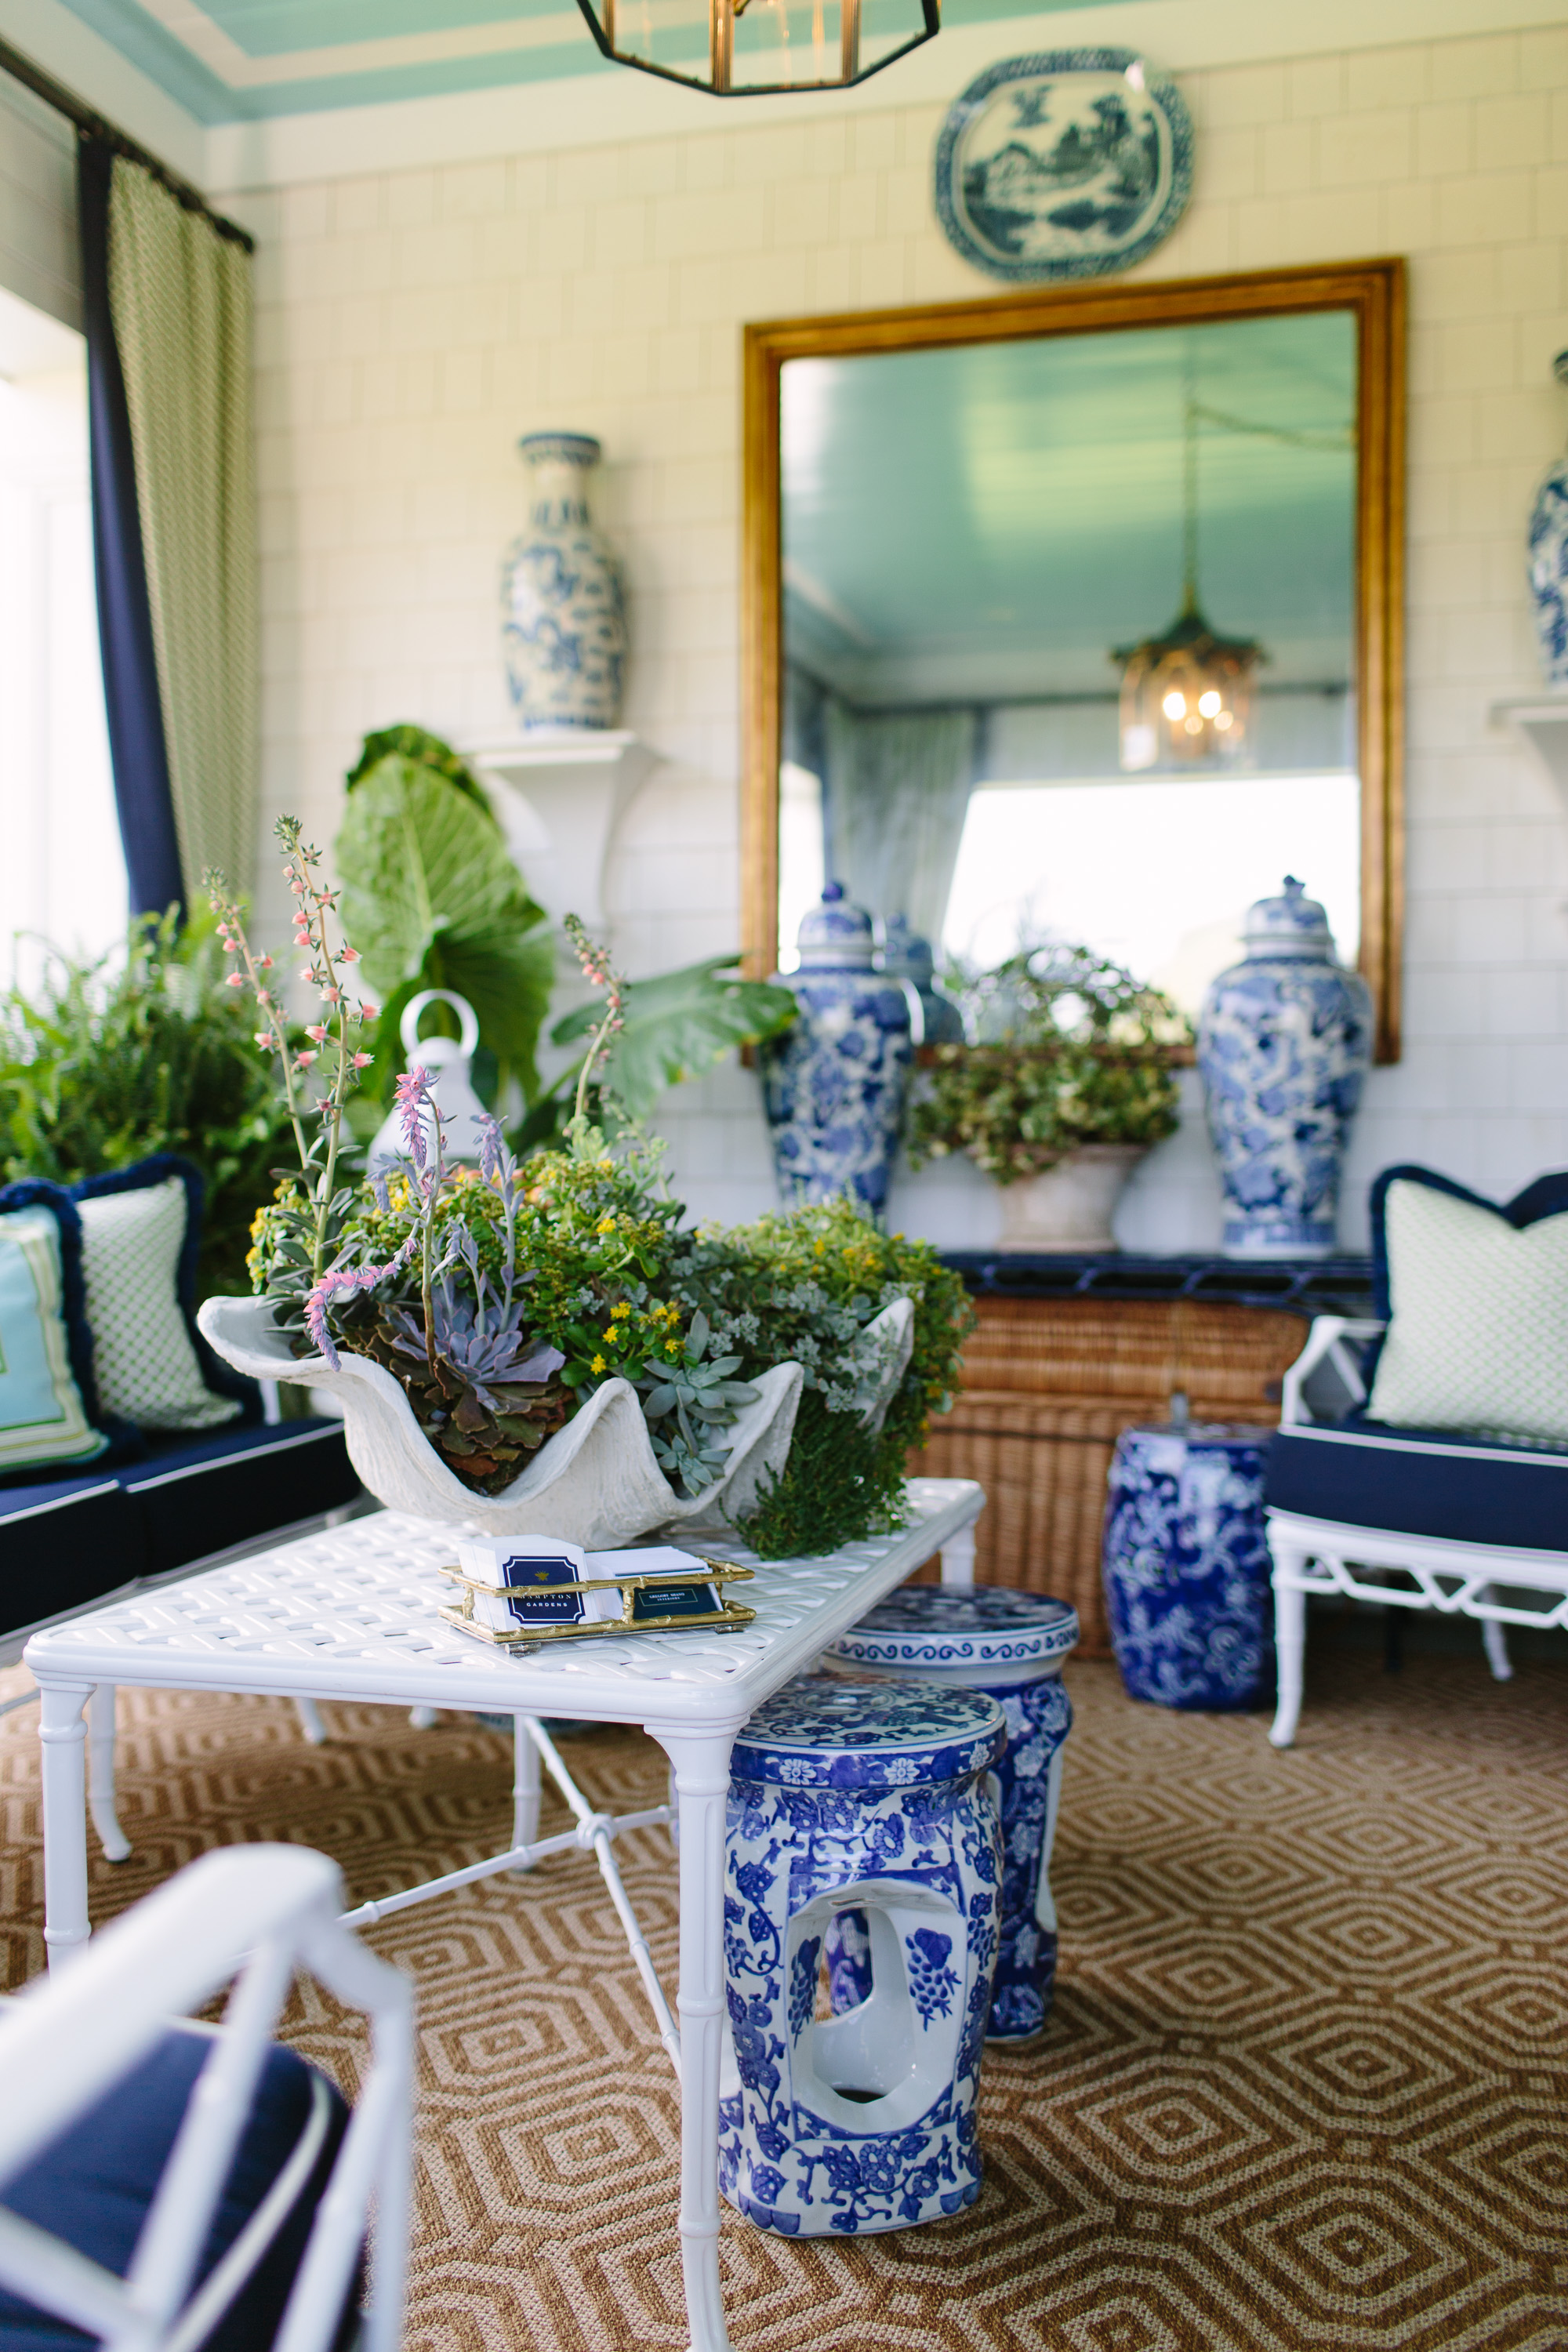 The covered porch designed by Gregory Shano at the 2017 Hampton Designer Showhouse